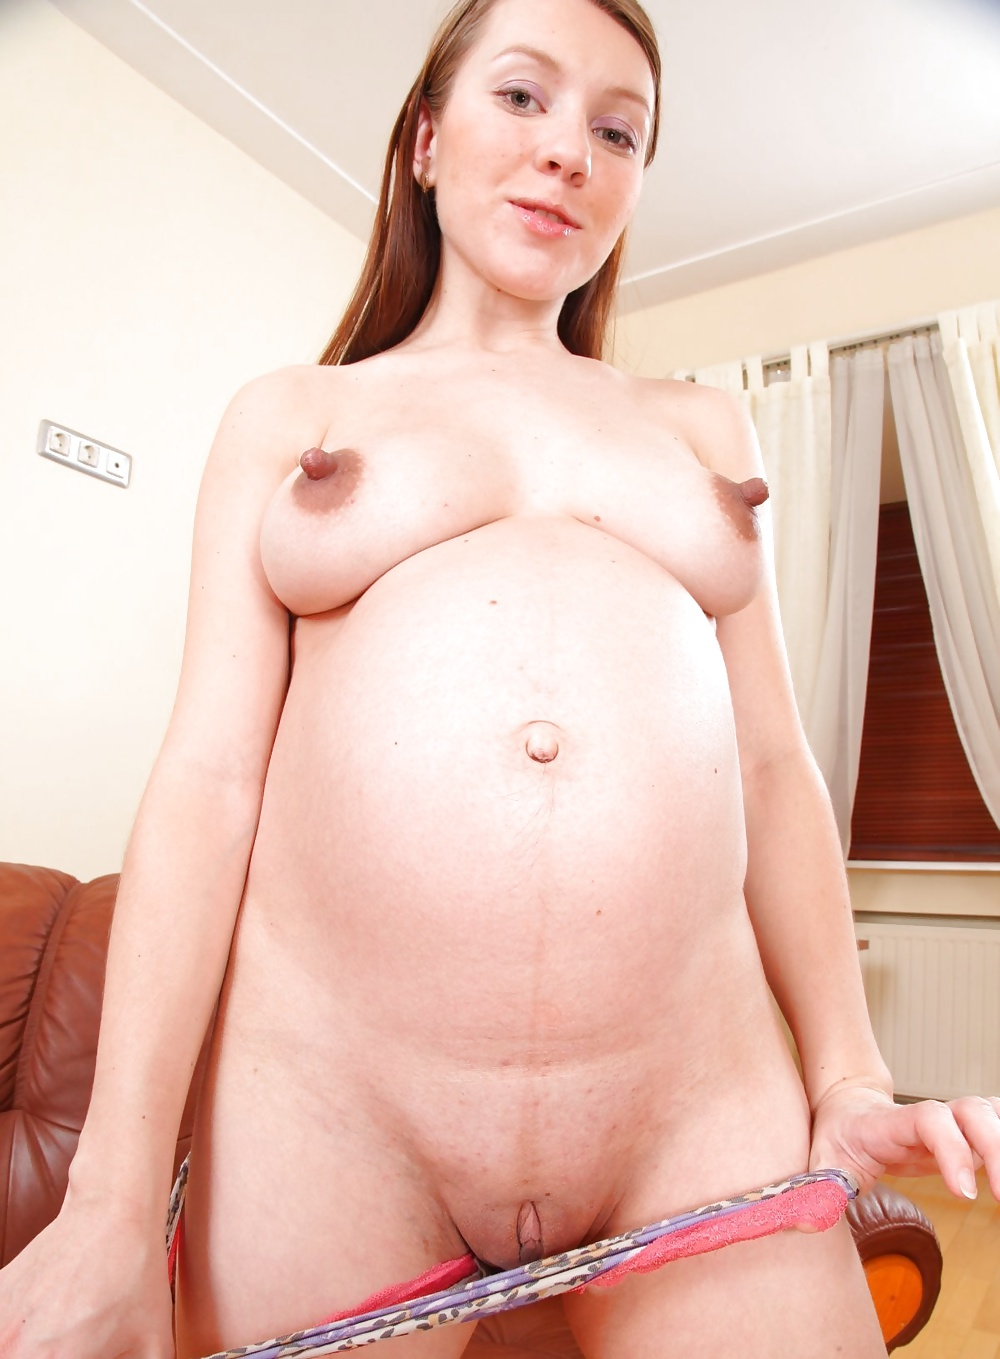 Perky, Puffy And Small Tits, Big Nipples 16 - 17 Imgs -7222